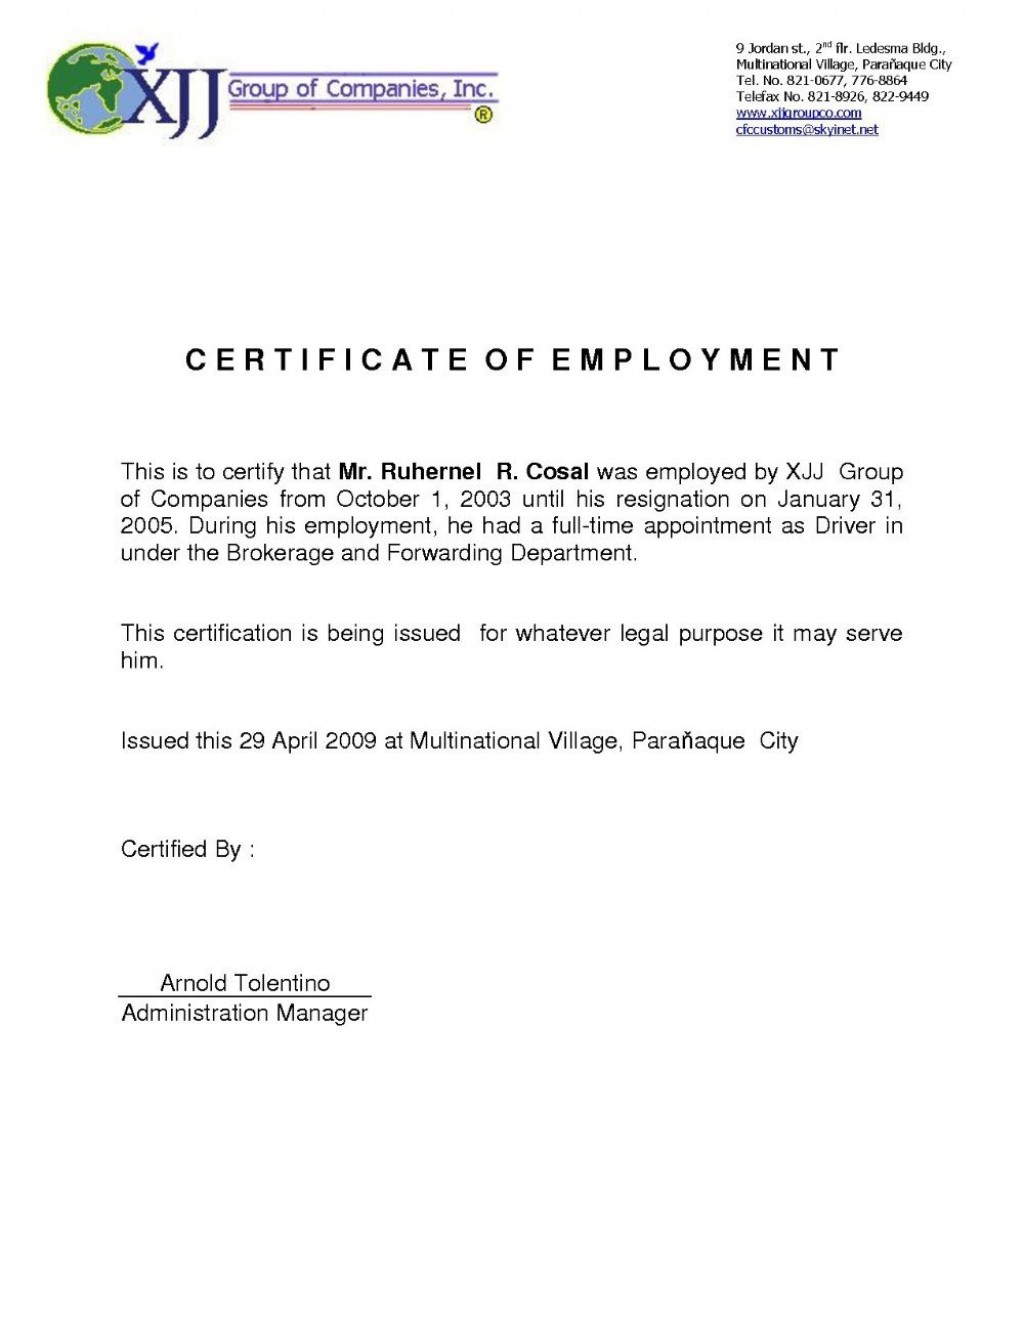 005 Incredible Certificate Of Employment Template Highest Clarity  Nz Sample Word Format FreeLarge